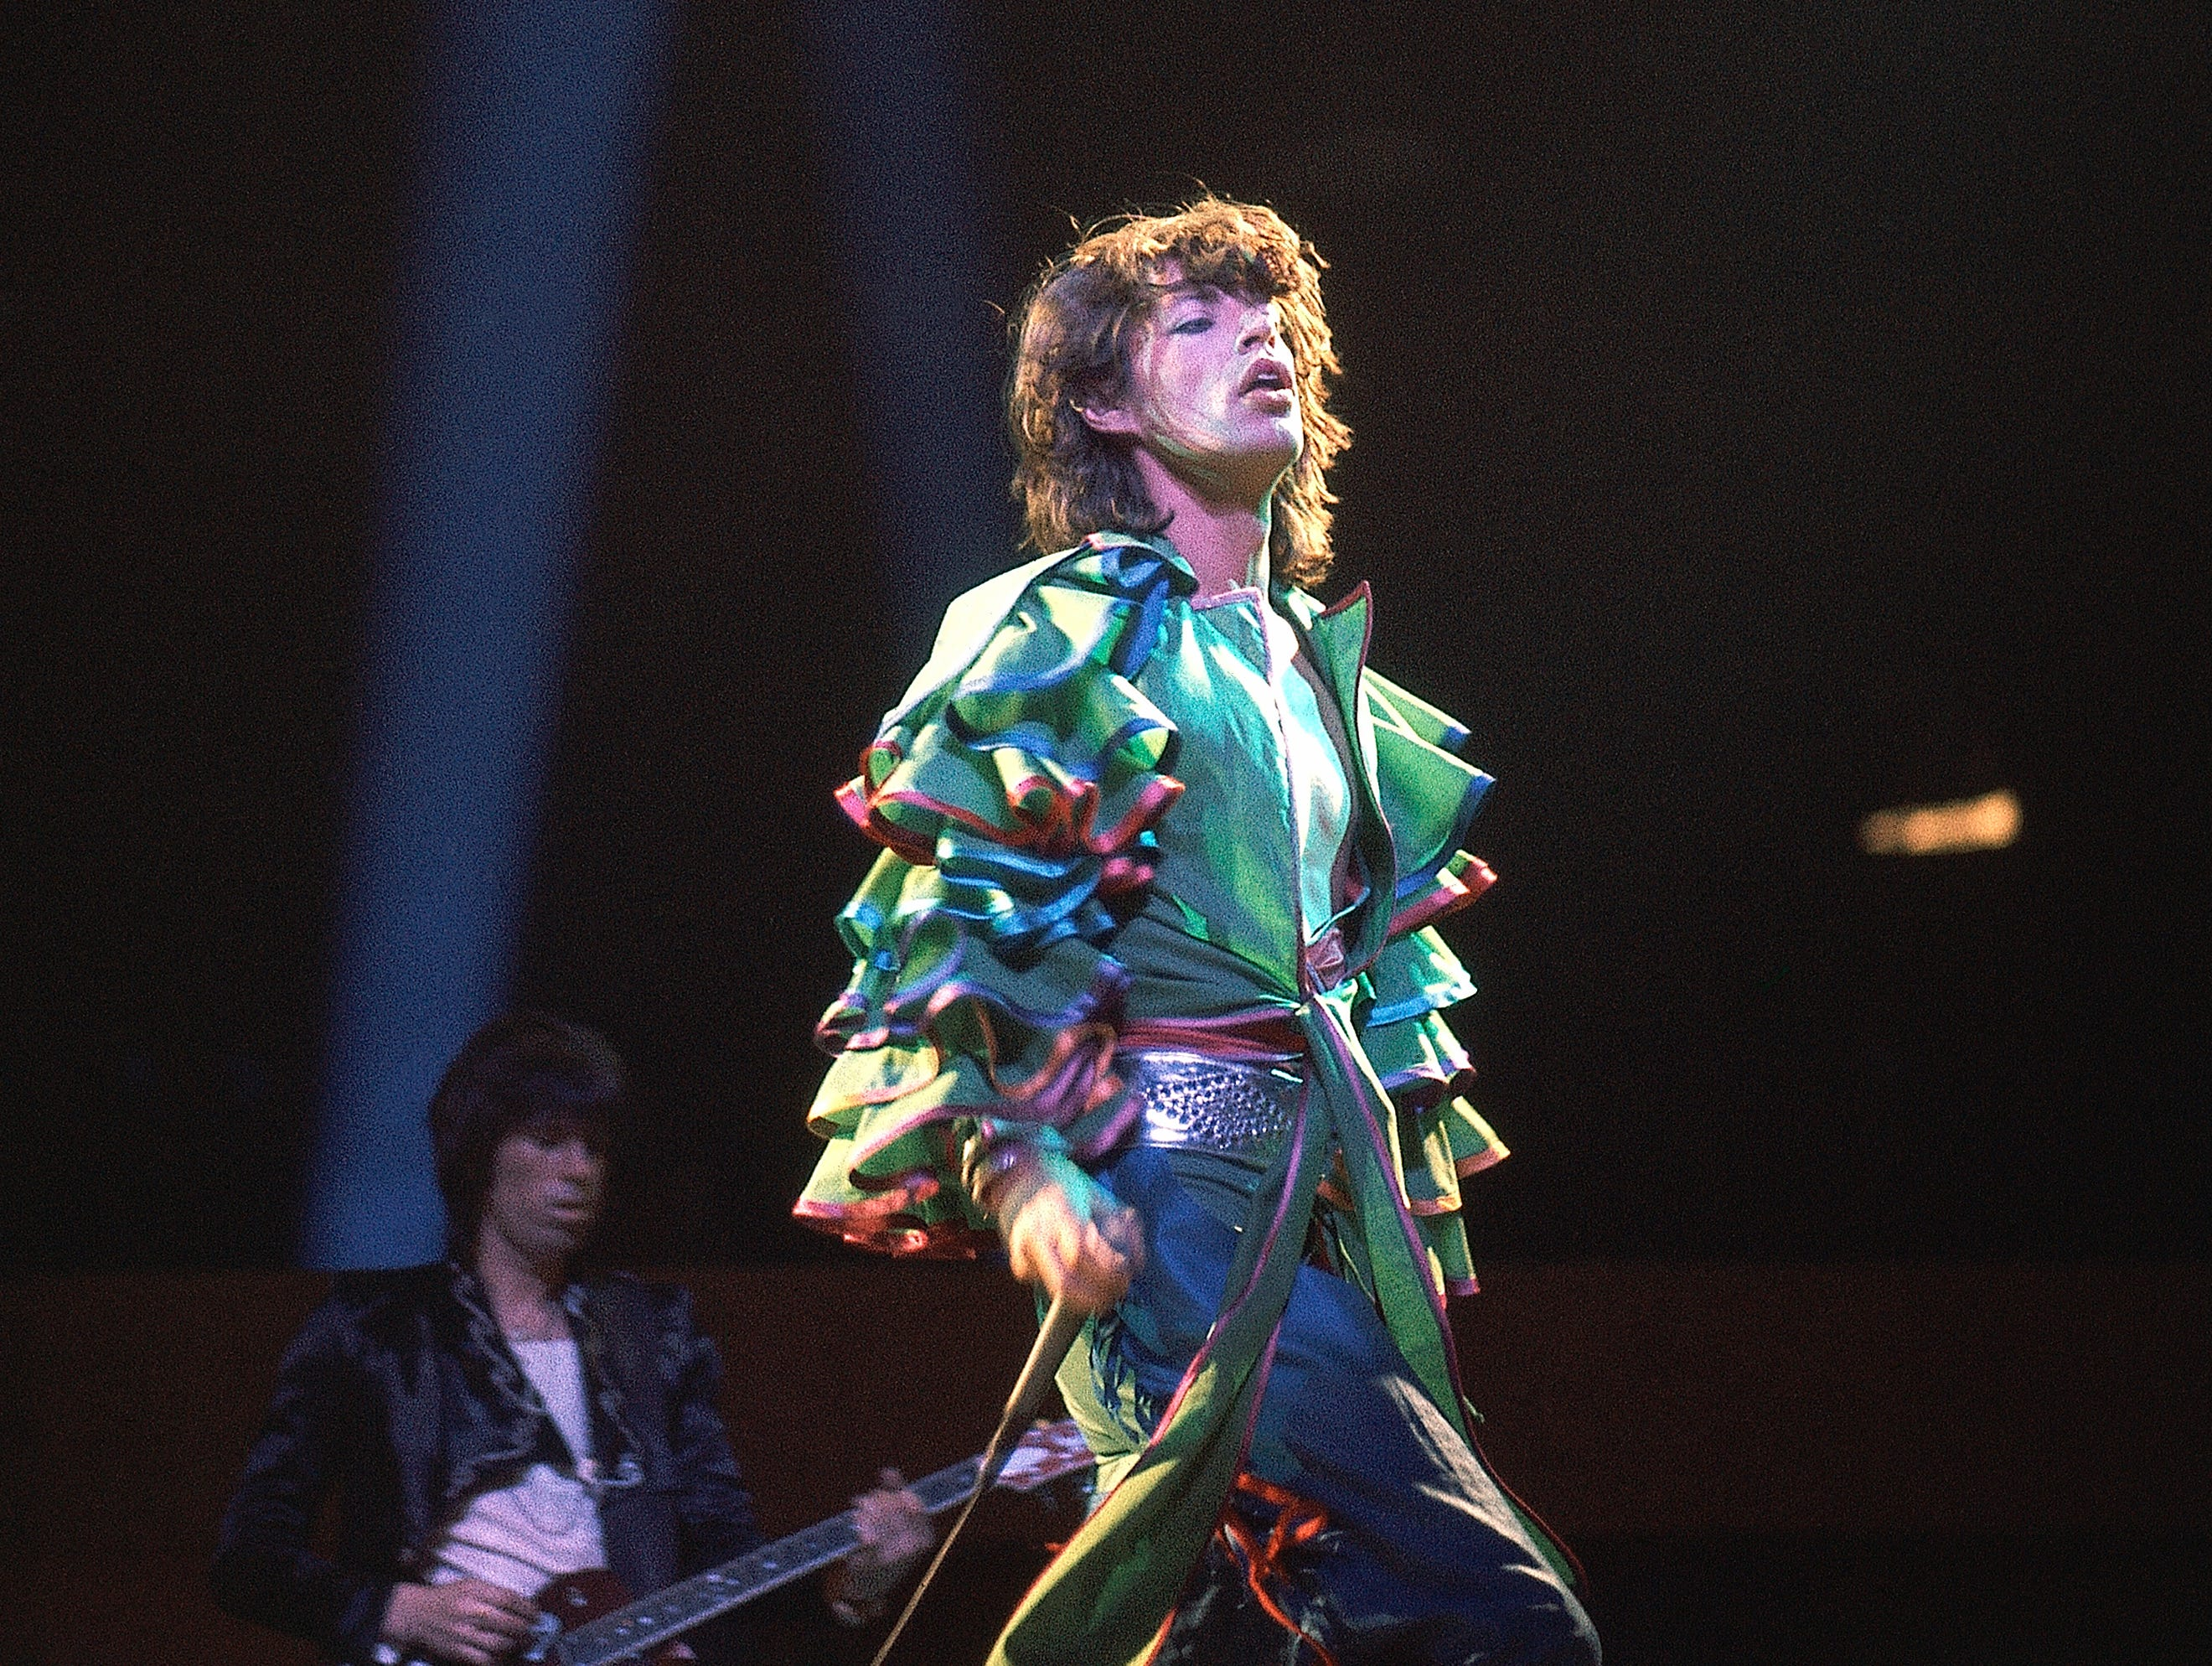 Mick Jagger singing in The Rolling Stones at the Frankfurt concert hall, Germany around April 28, 1976 where the famous British rook group started their longest ever concert tour, leading them round the globe. The European leg of their tour ends on June 23 in Vienna. Keith Richards can be seen playing the drums in behind. (AP Photo)